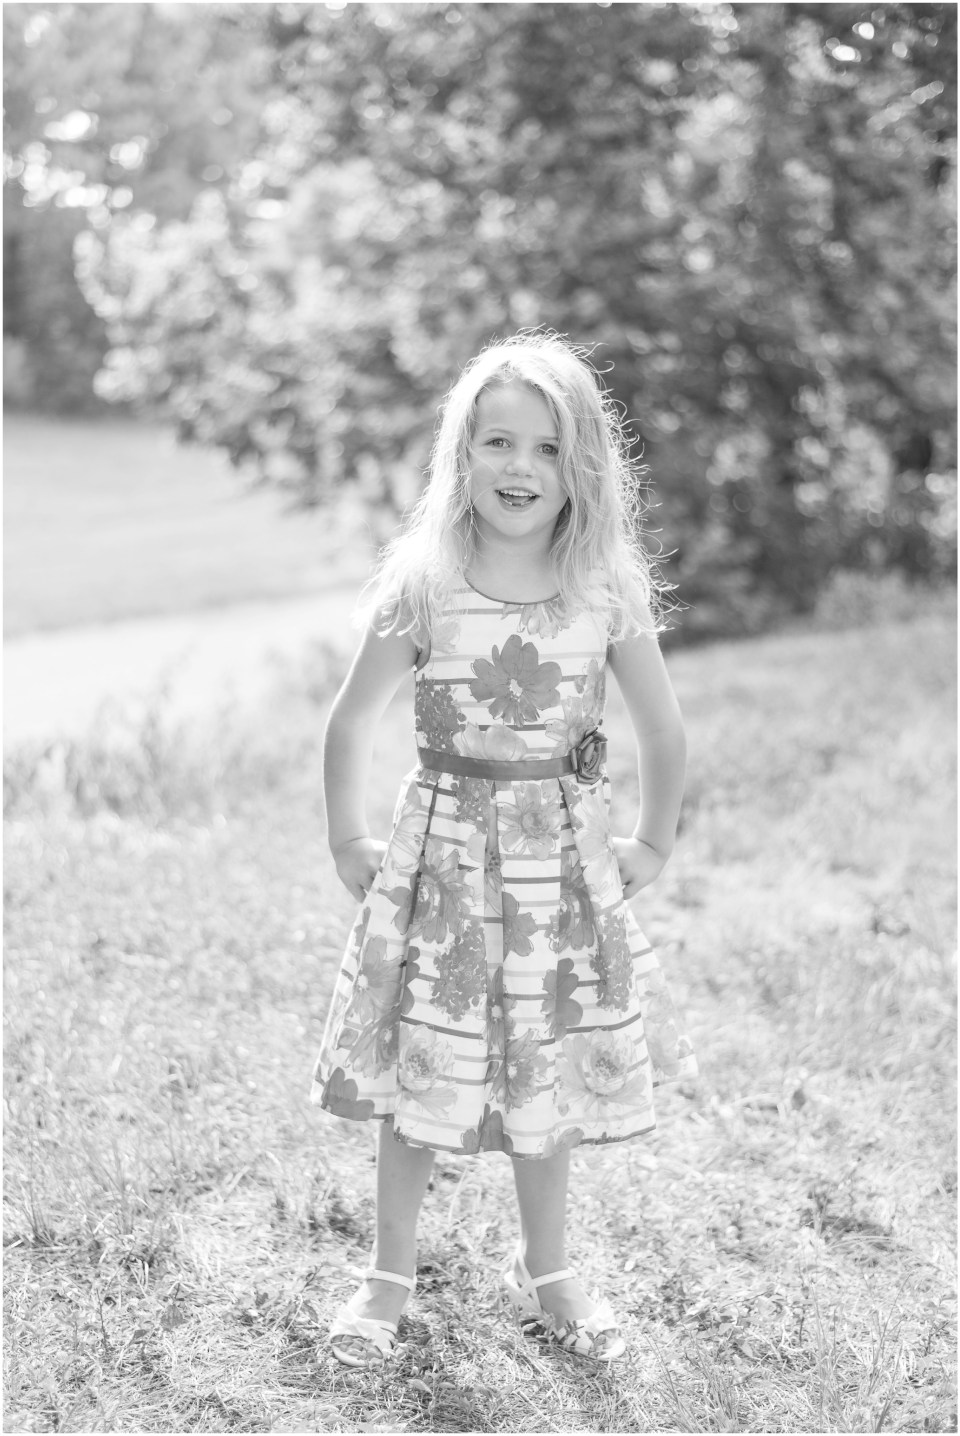 Kingwood photographer - Letter to daughter, Peanut, on her 5th birthday